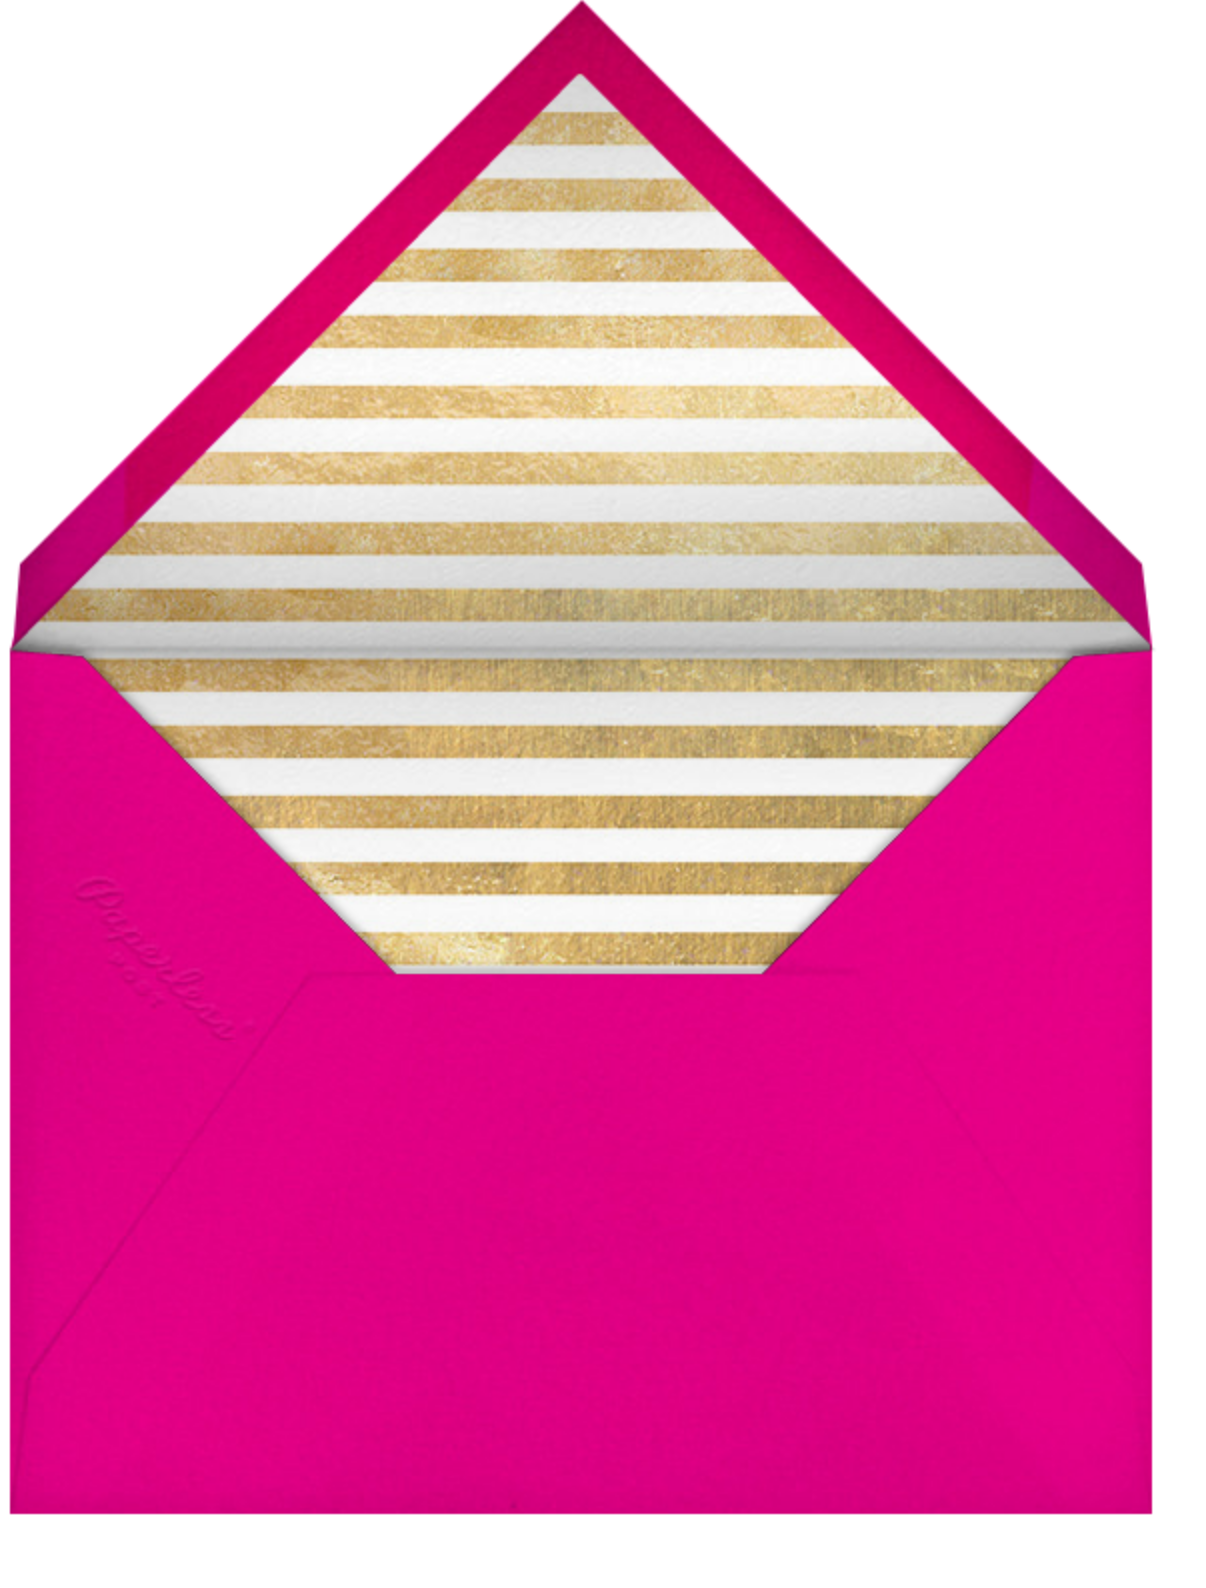 Me and You - kate spade new york - Love and romance - envelope back